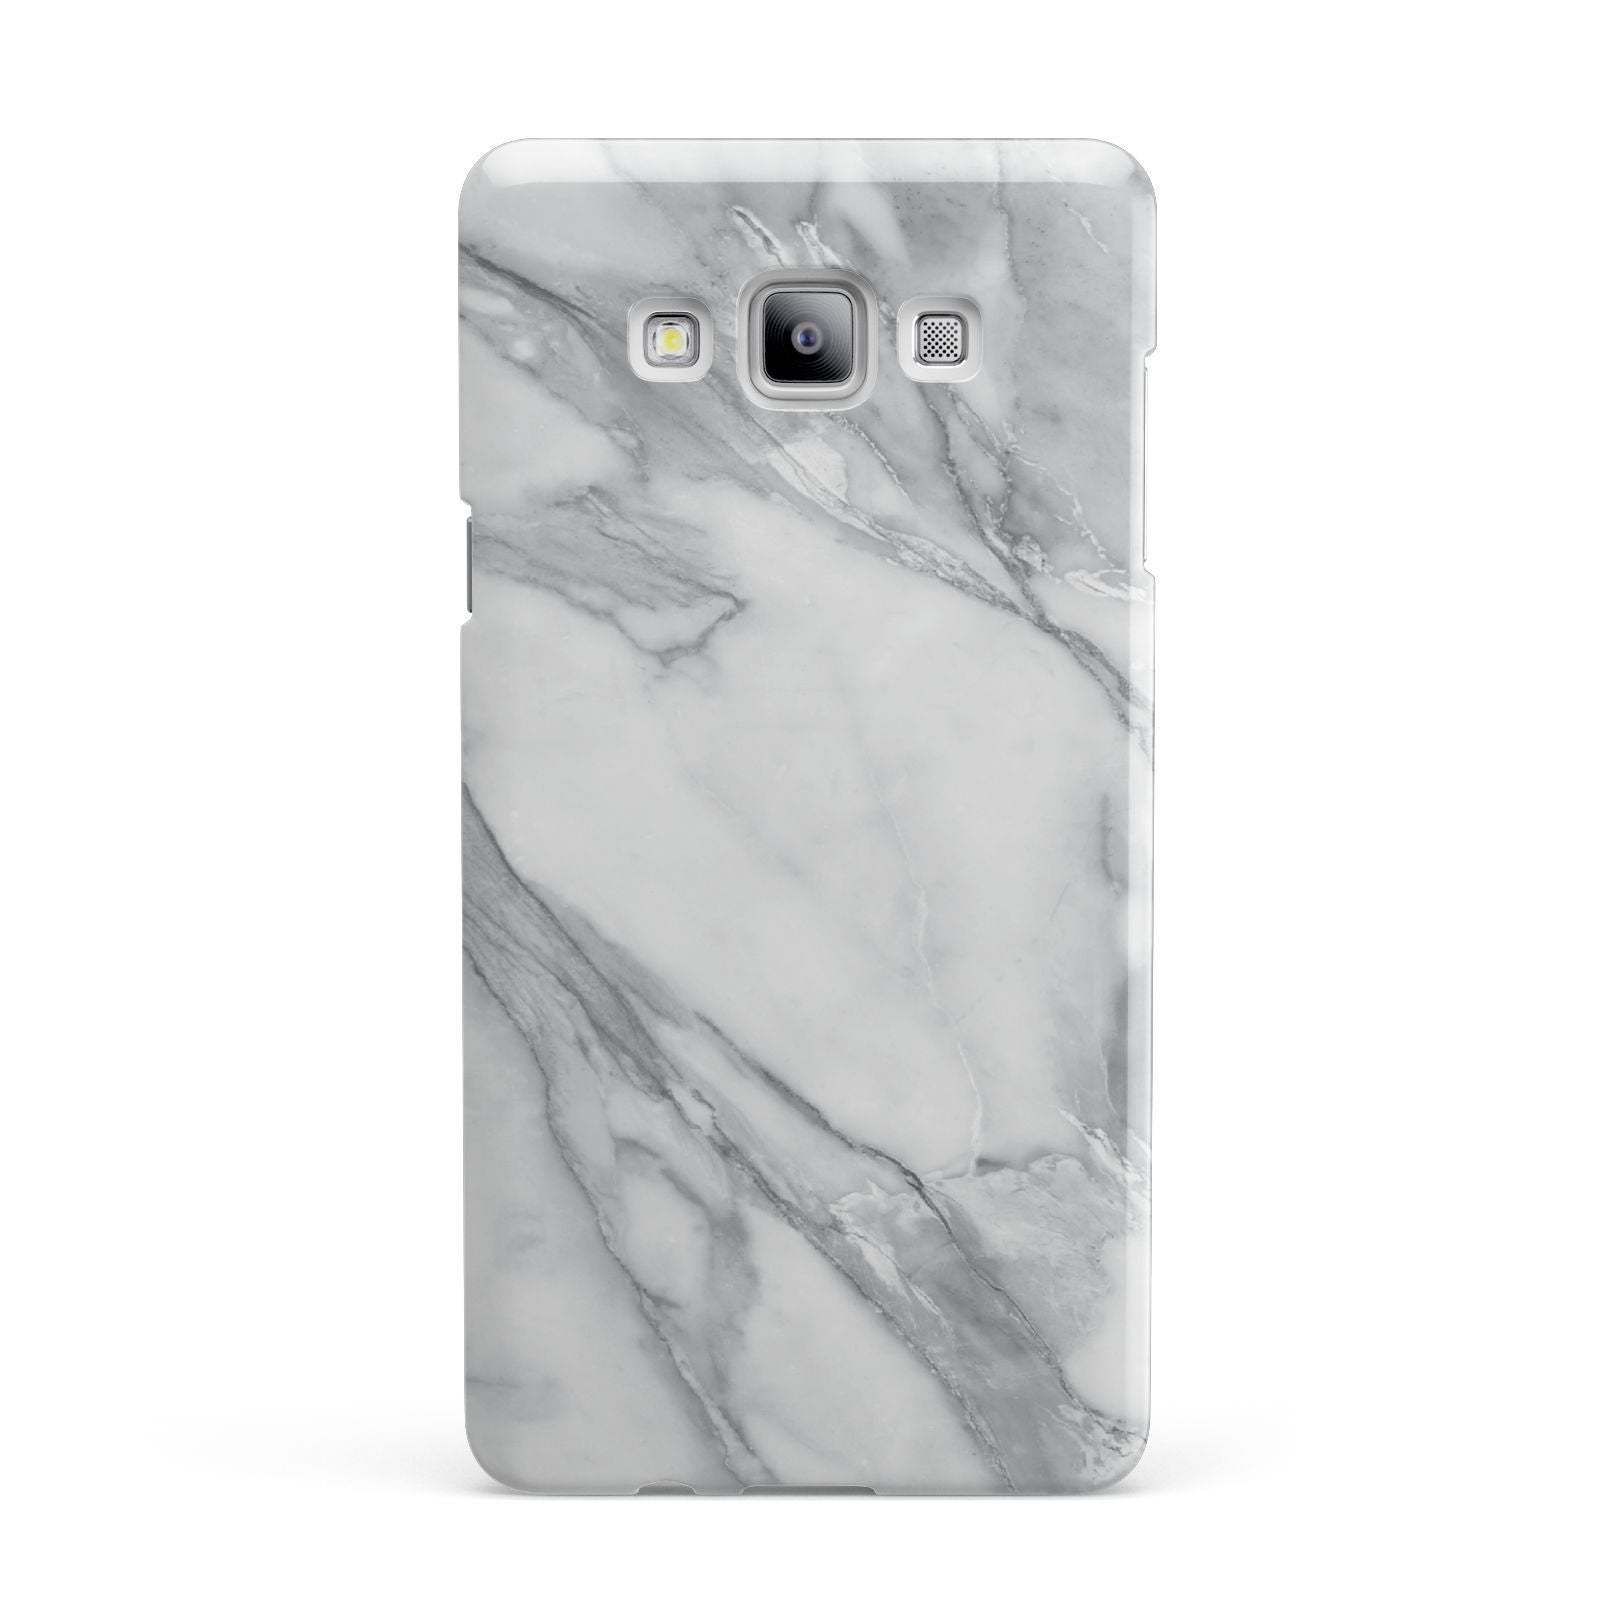 Faux Marble Effect White Grey Samsung Galaxy A7 2015 Case